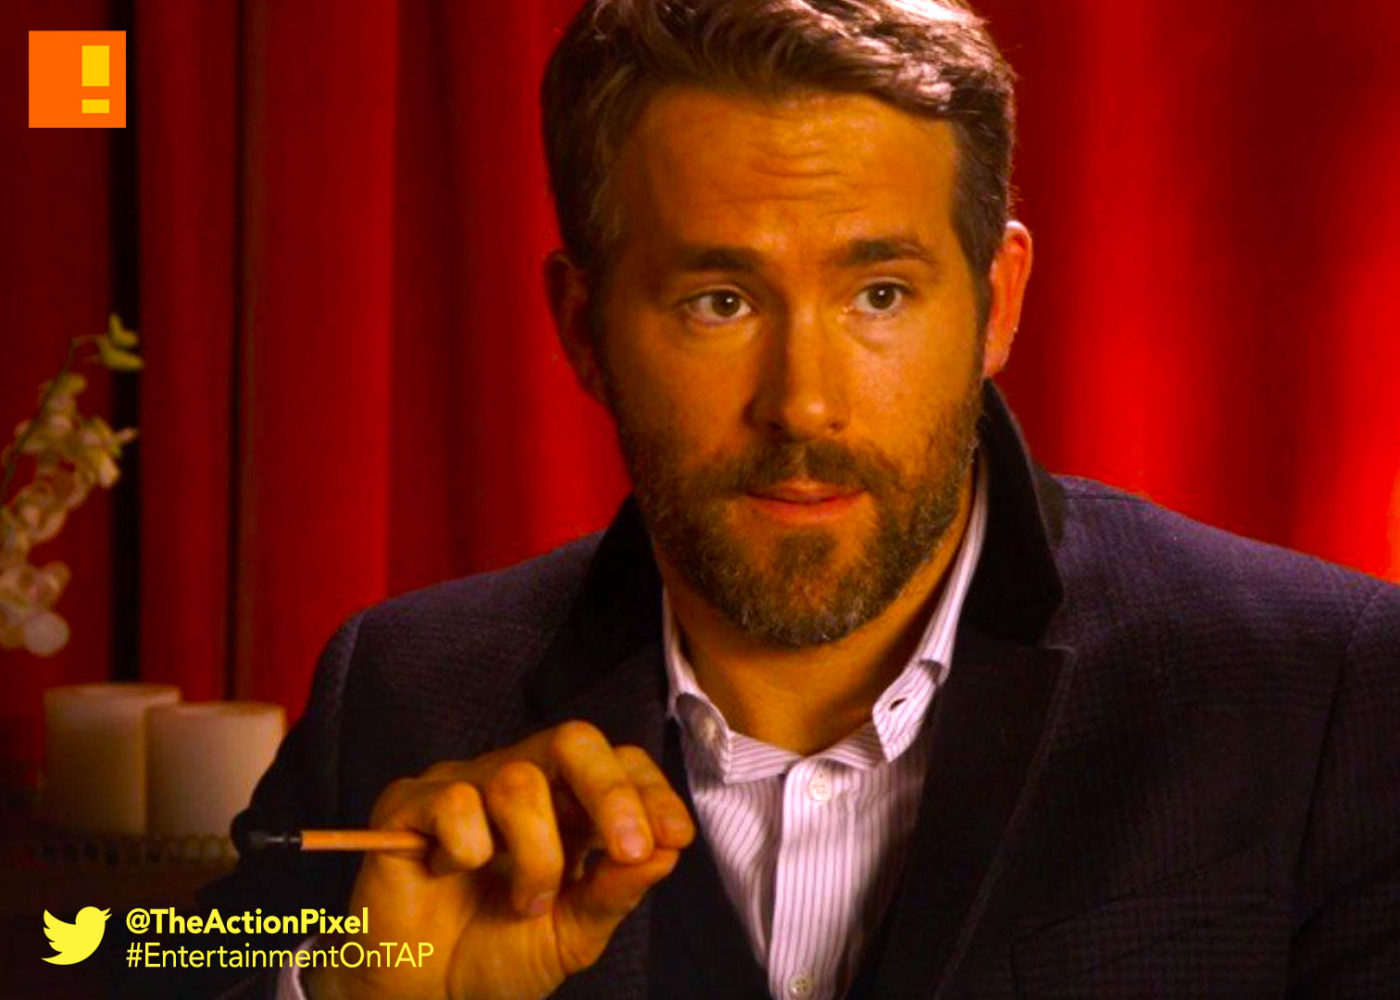 ryan reynolds, the action pixel, entertainment on tap,